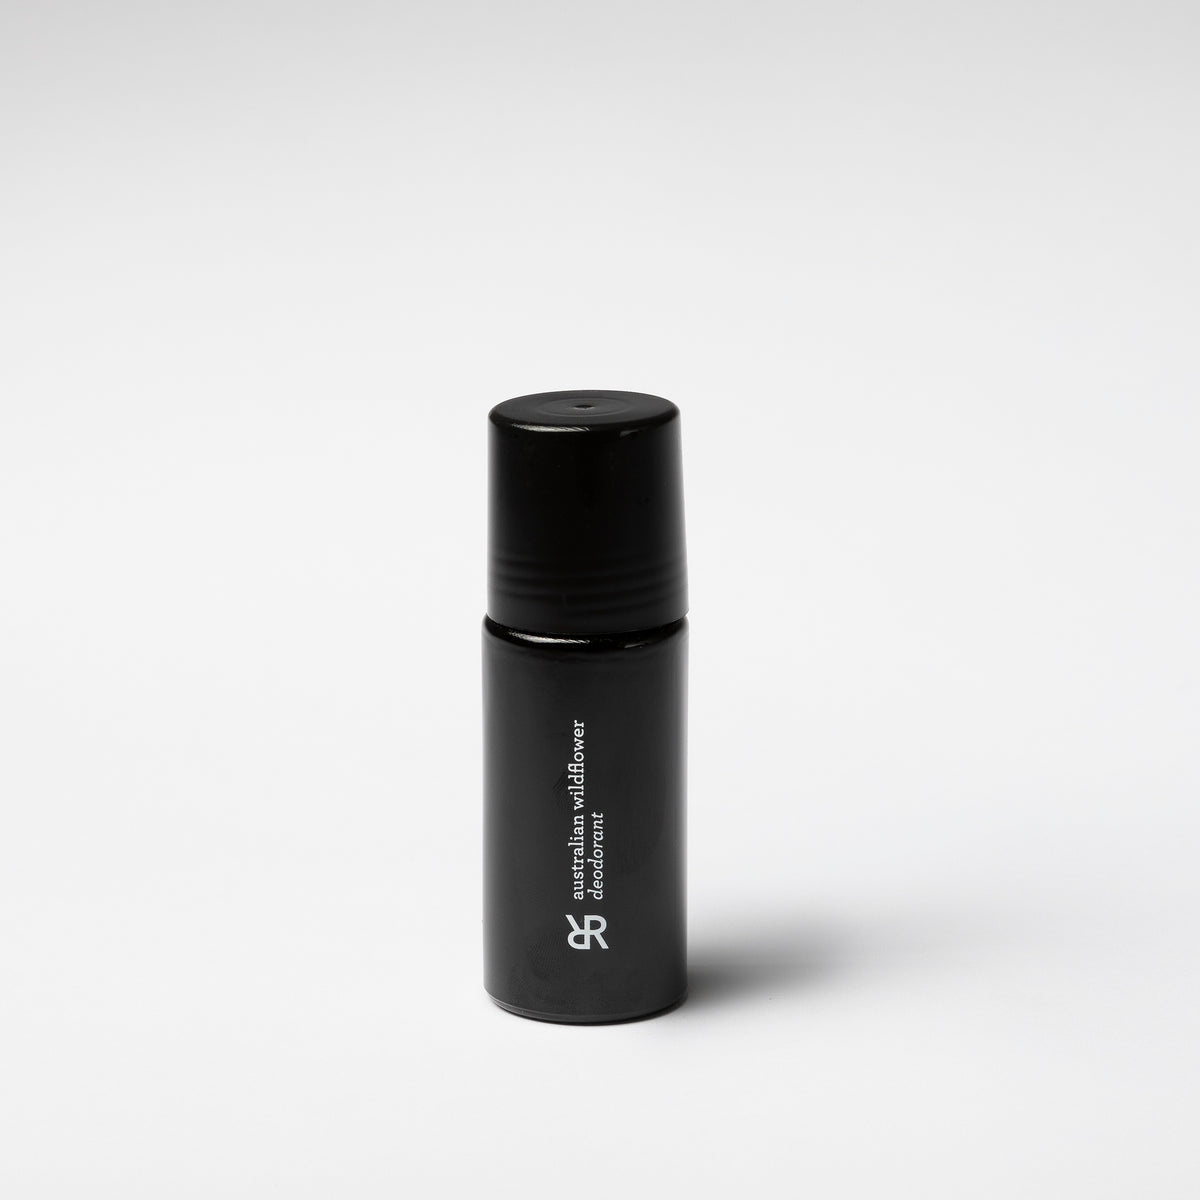 Natural, aluminium free deodorant for all skin types. Go clean and safe with this Rohr Remedy essential oil based deodorant. Official Rohr Remedy stockist.